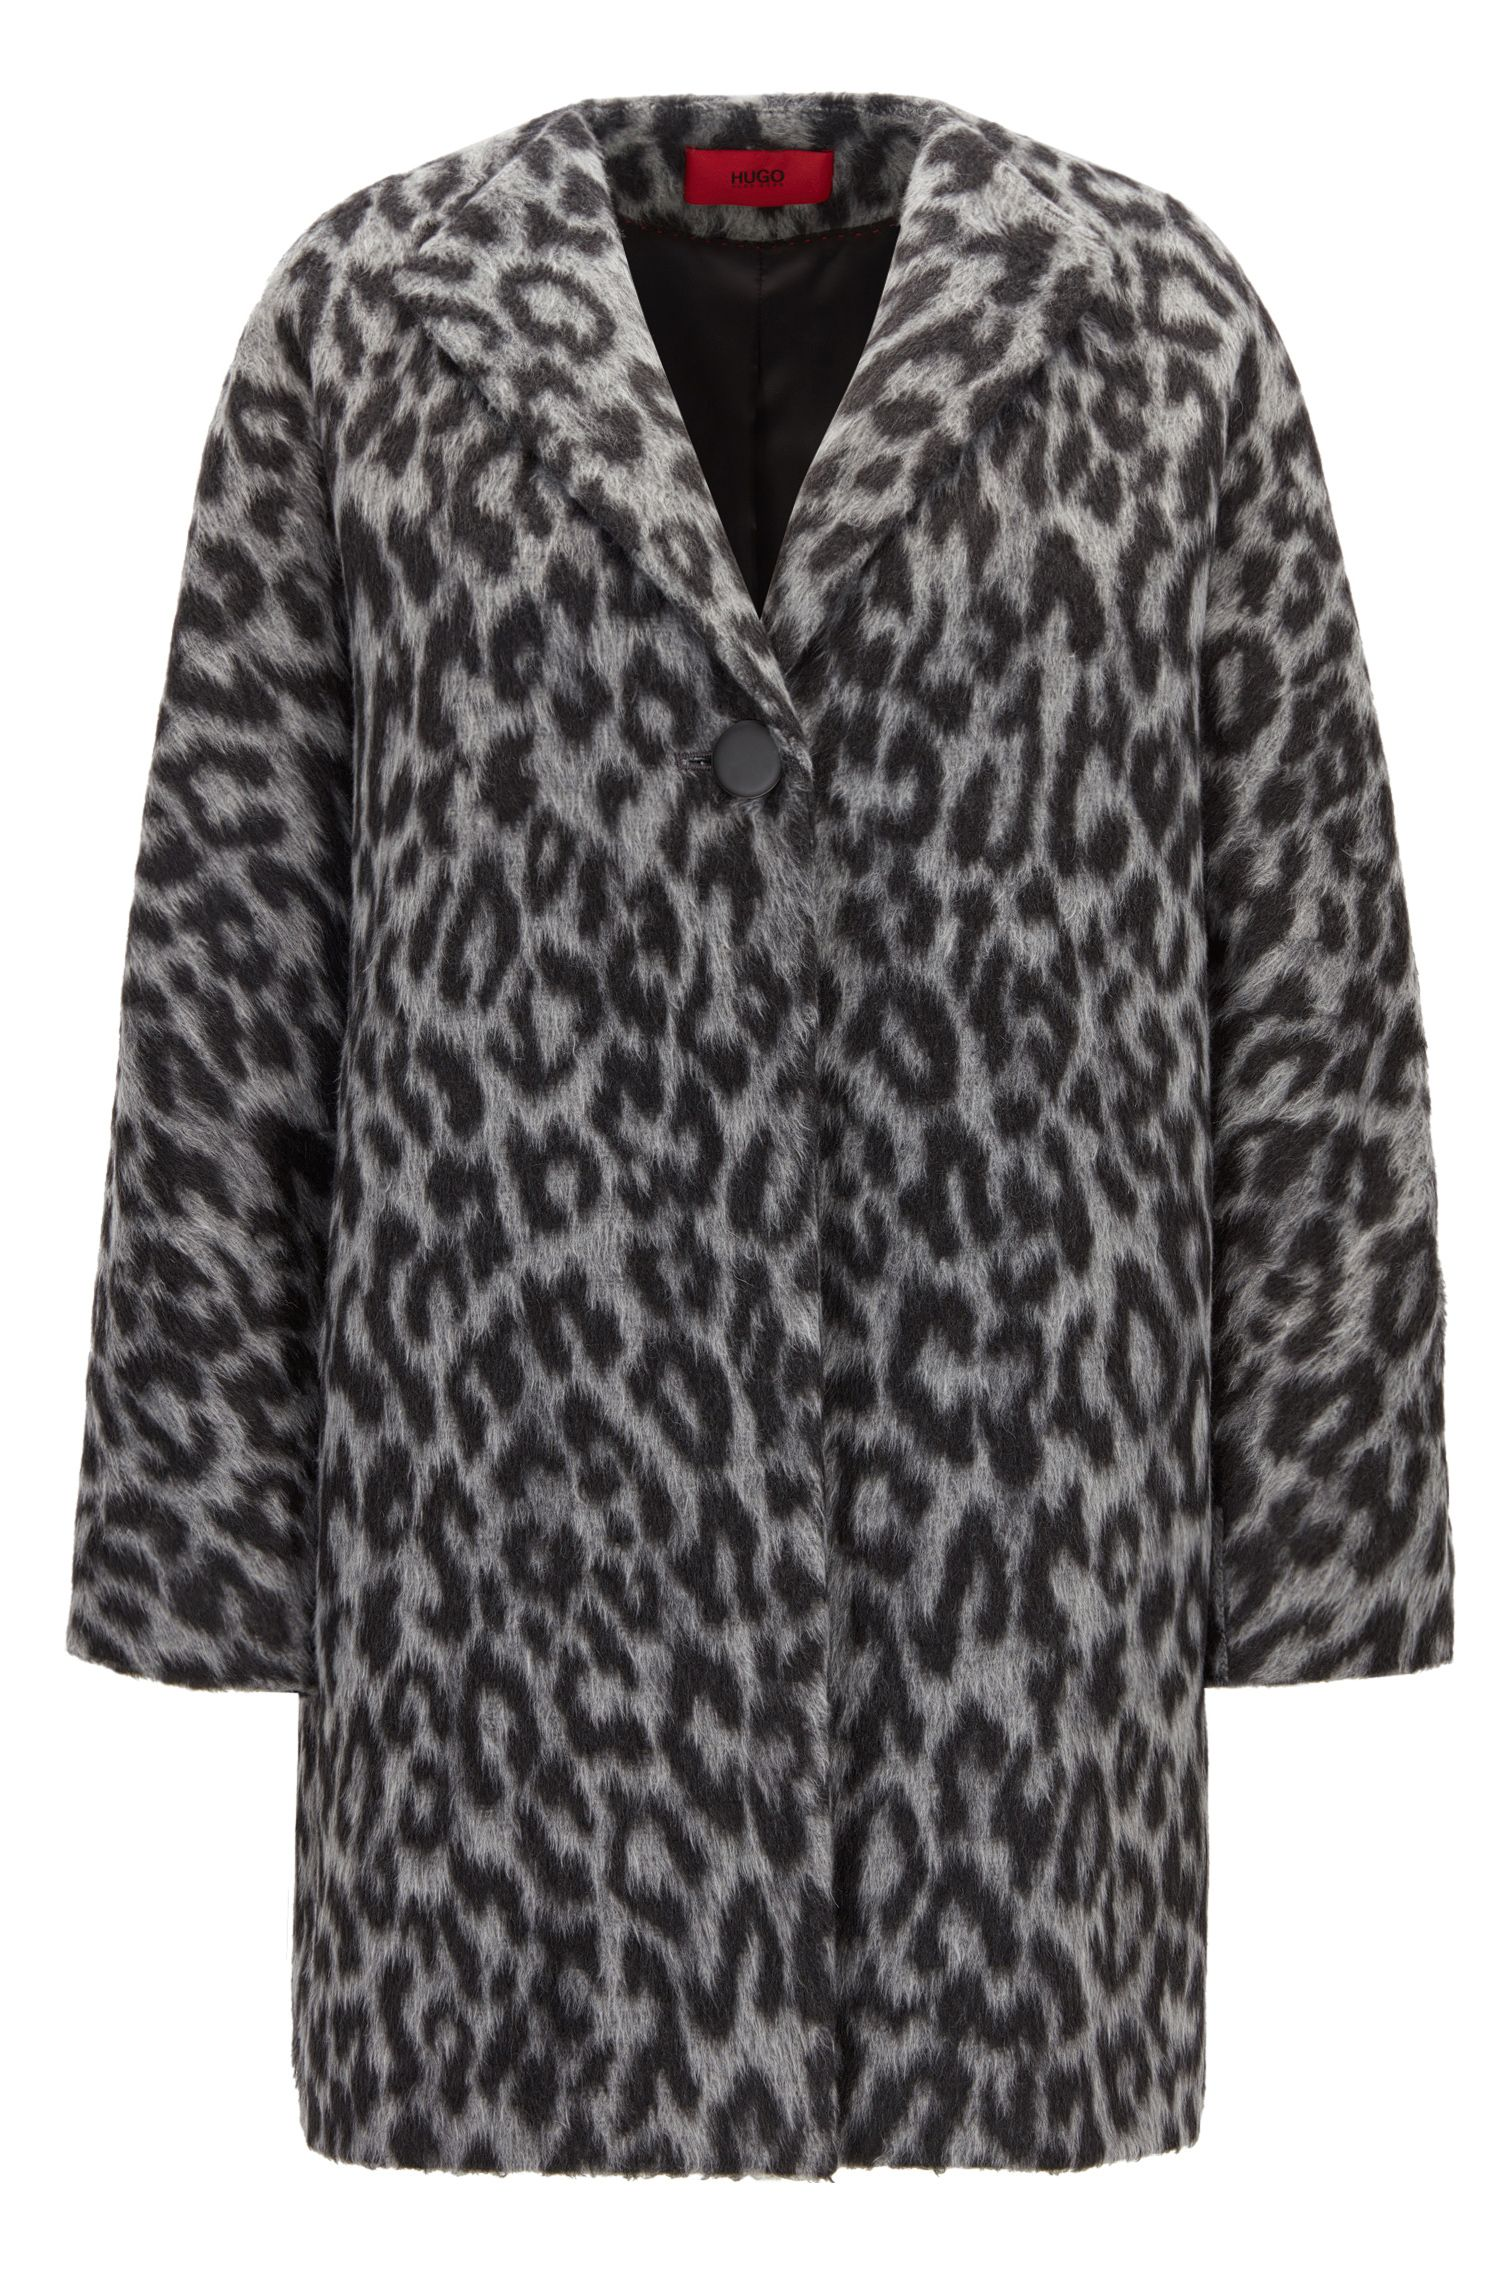 Oversize-fit coat in two-tone cheetah print